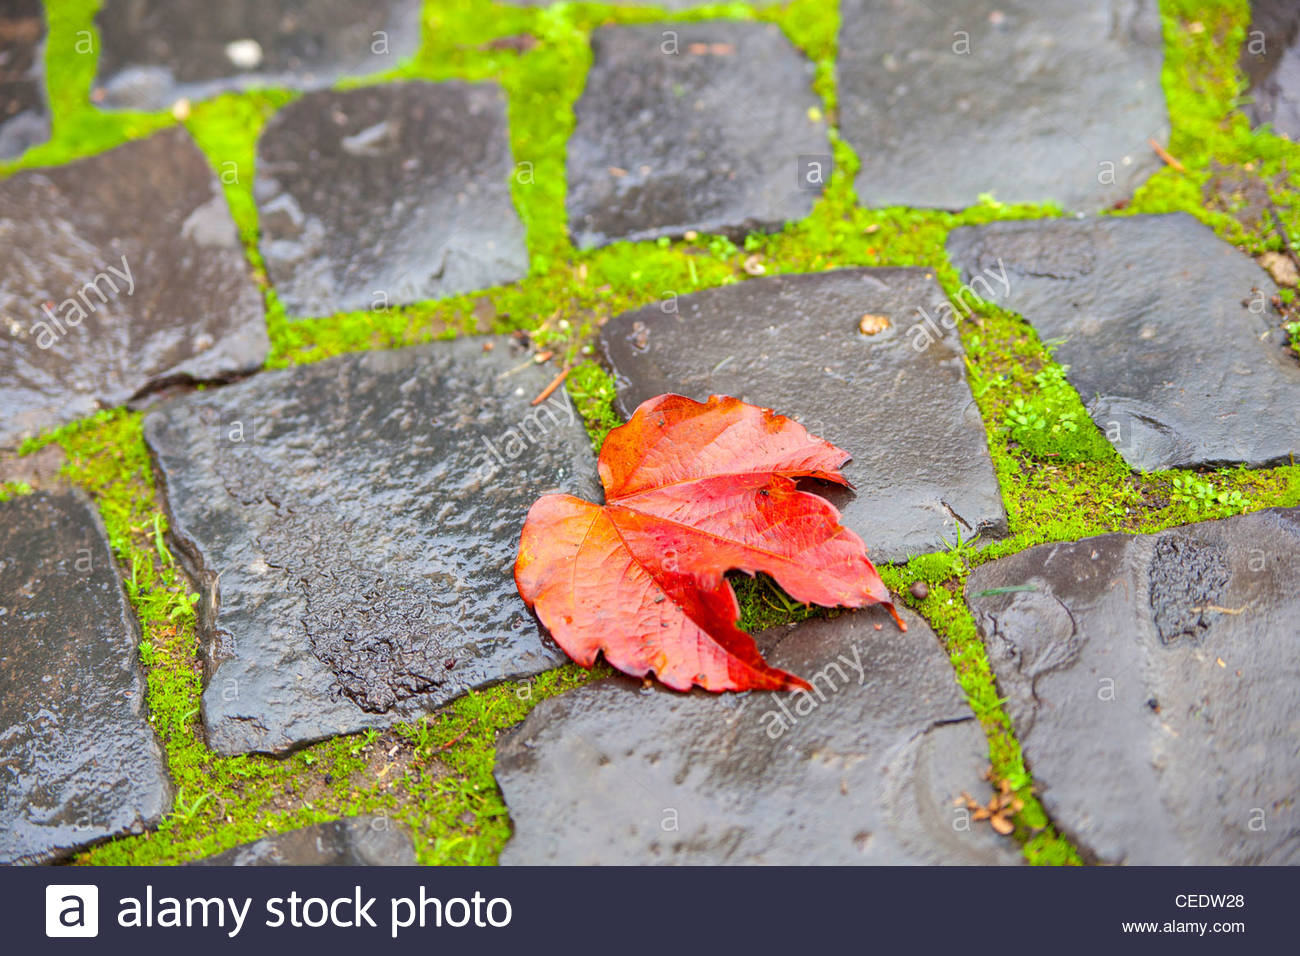 Red leaf on green moss and wet stones - Stock Image